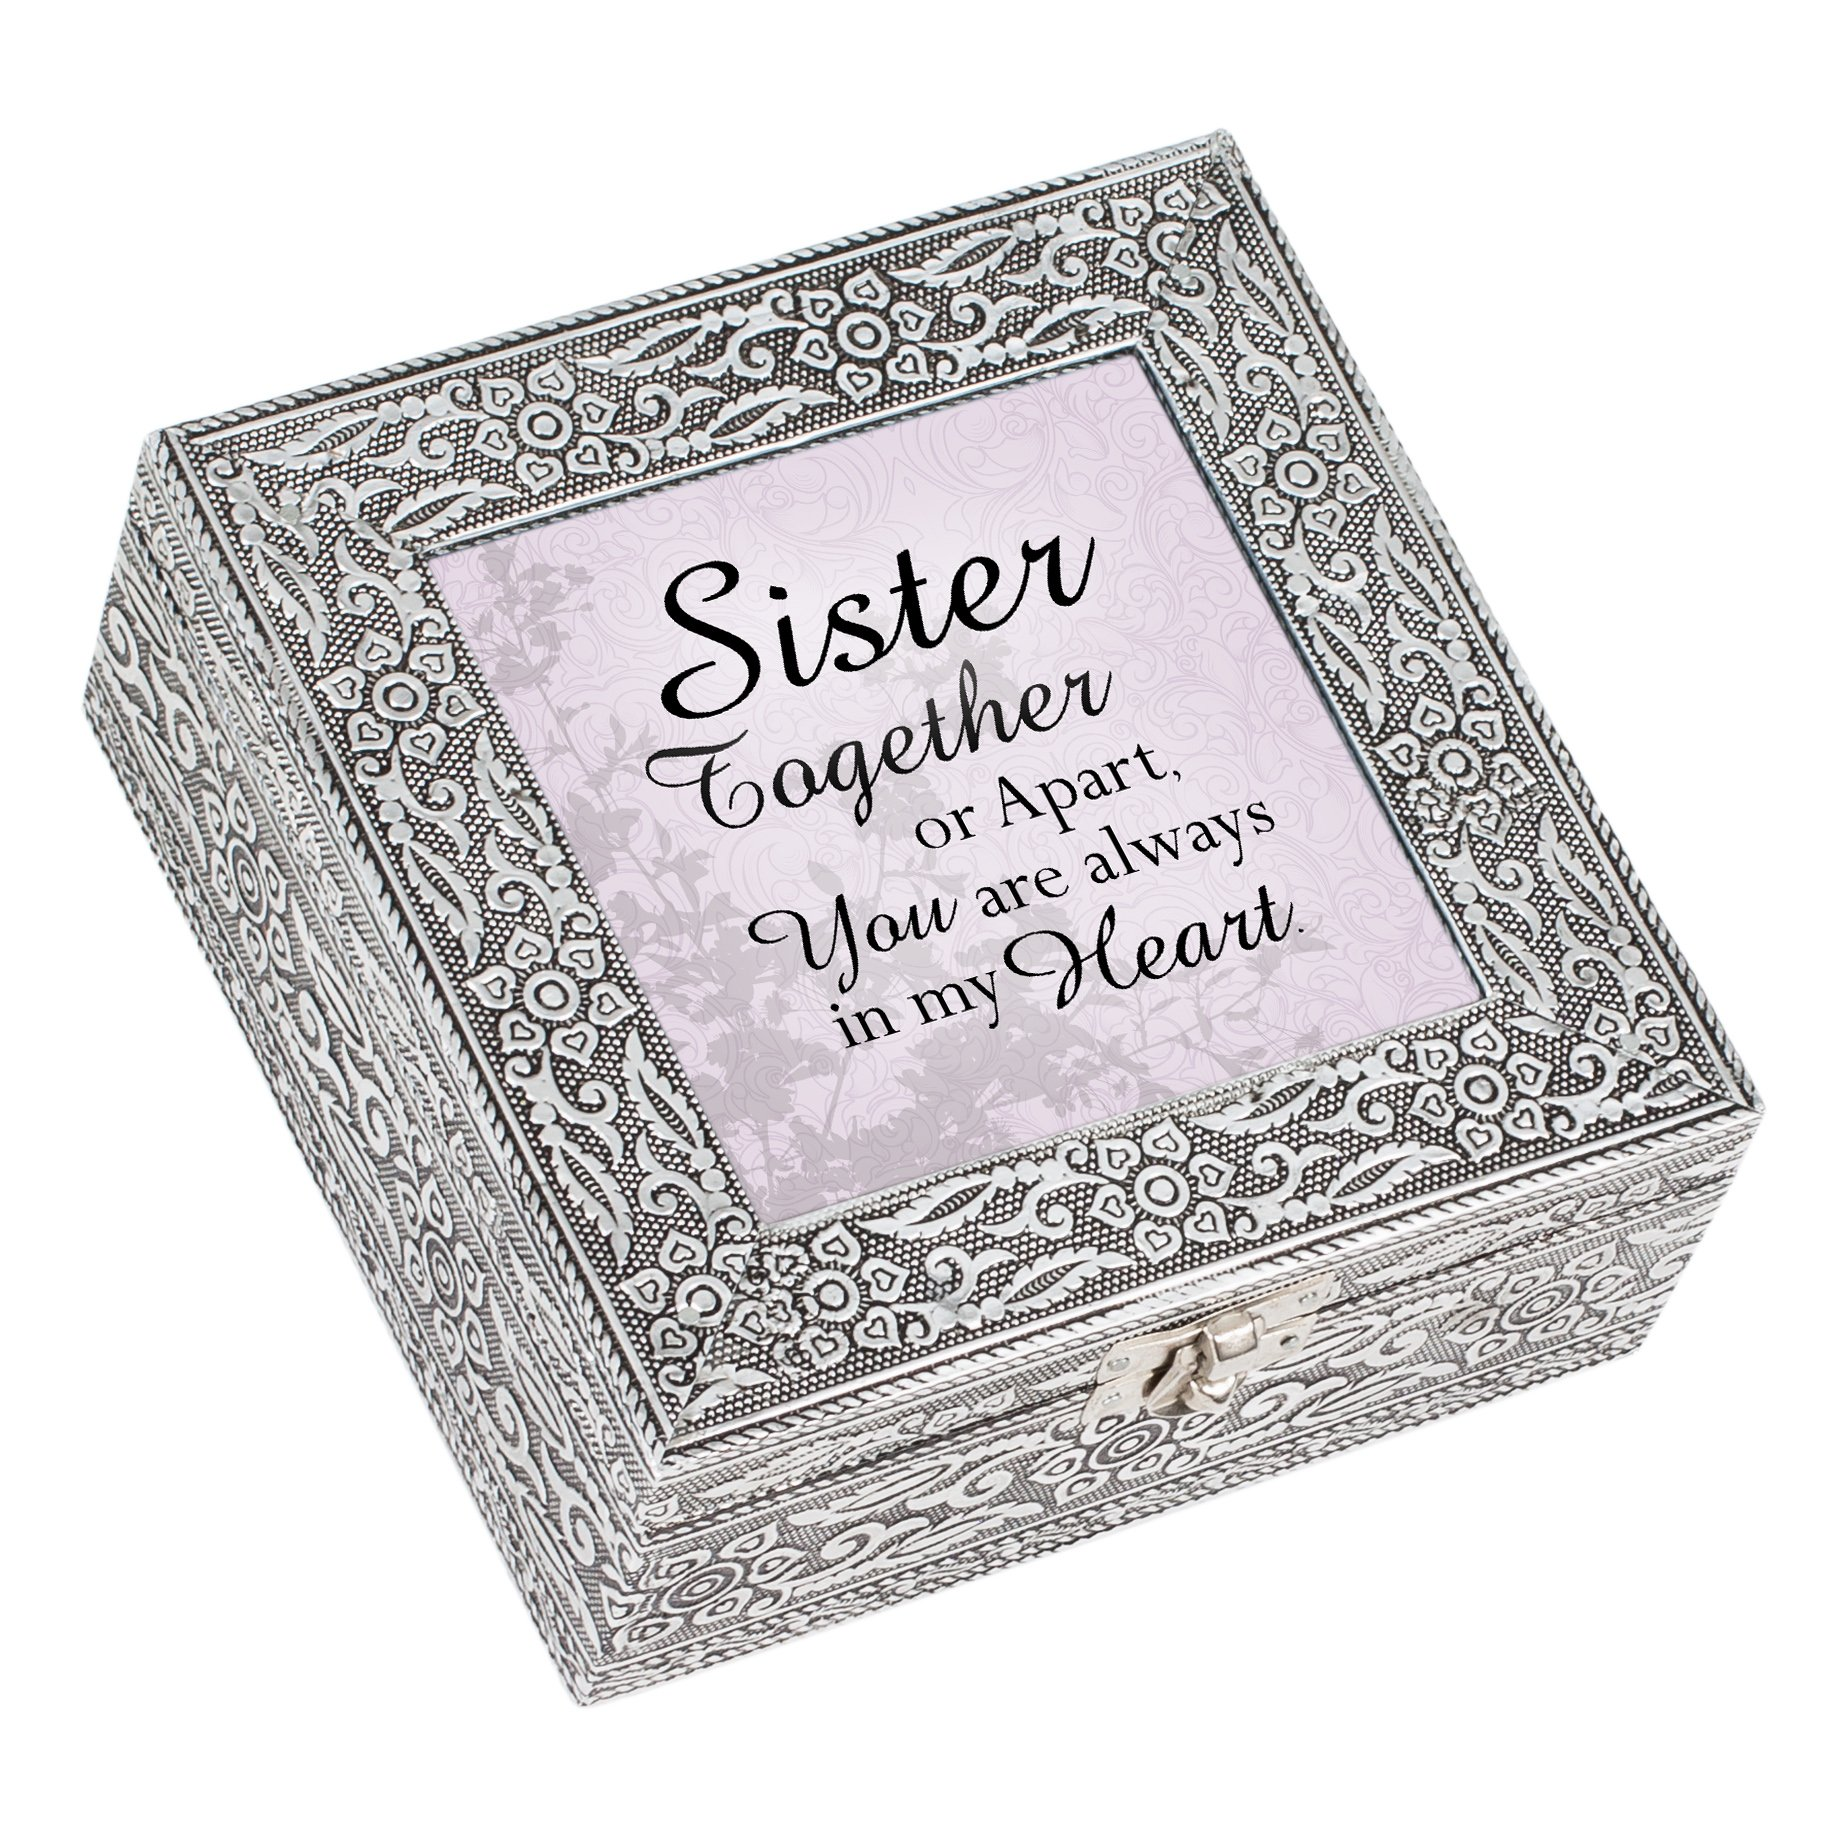 Cottage Garden Sister Together Always in Heart Silver Stamped Metal Jewelry Music Box Plays Tune That's What Friends are for